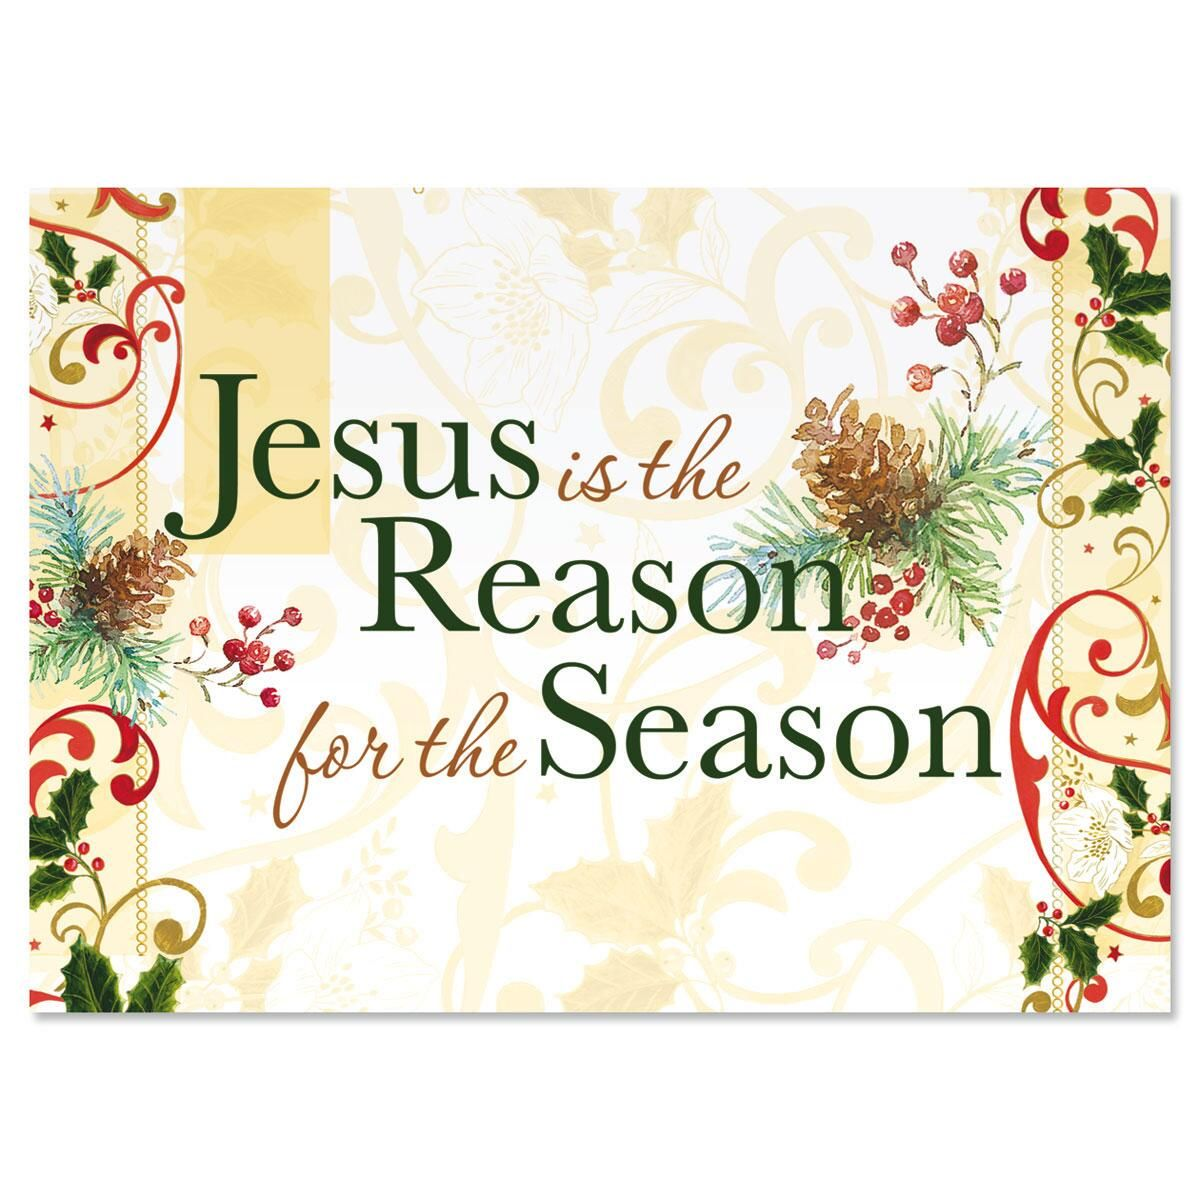 Jesus is the Reason Christmas Cards